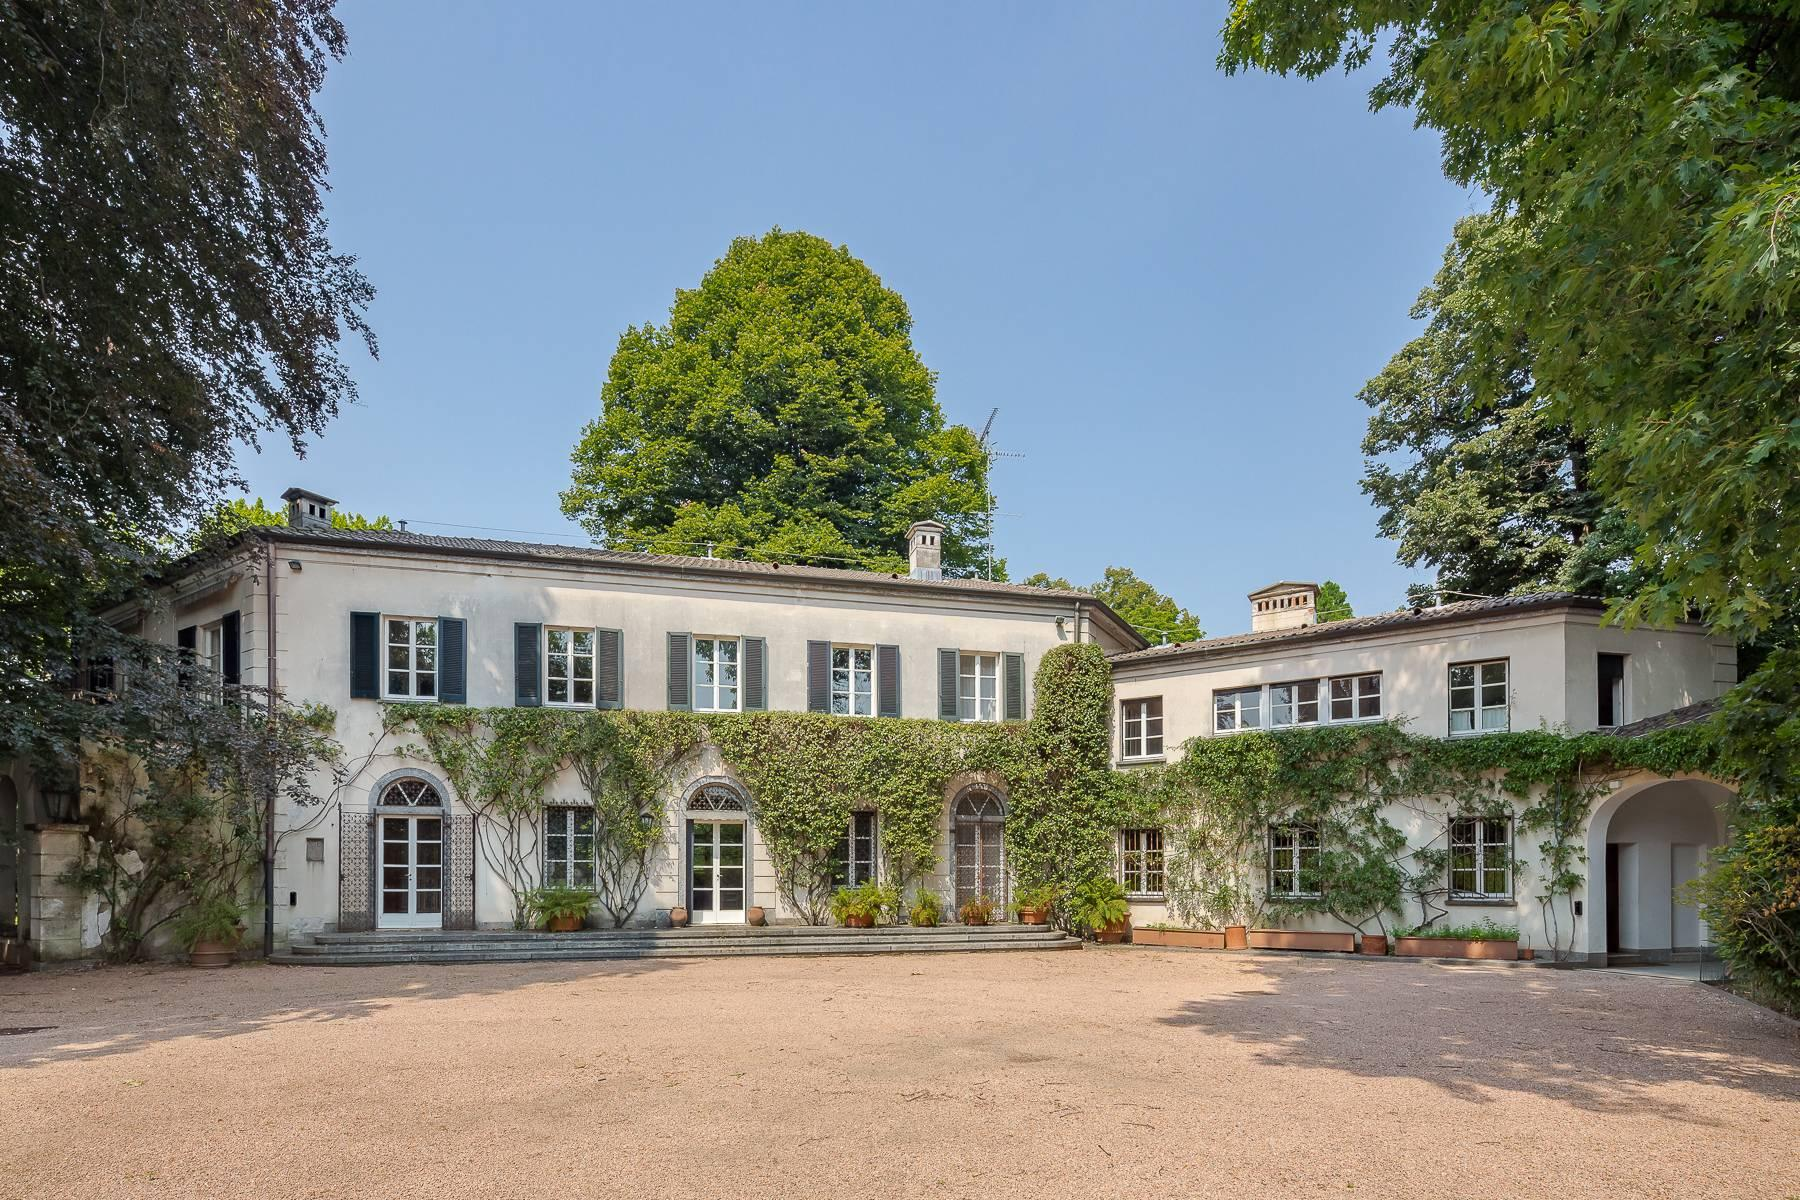 Beautiful villa close to Milan with park and swimming pool - 1